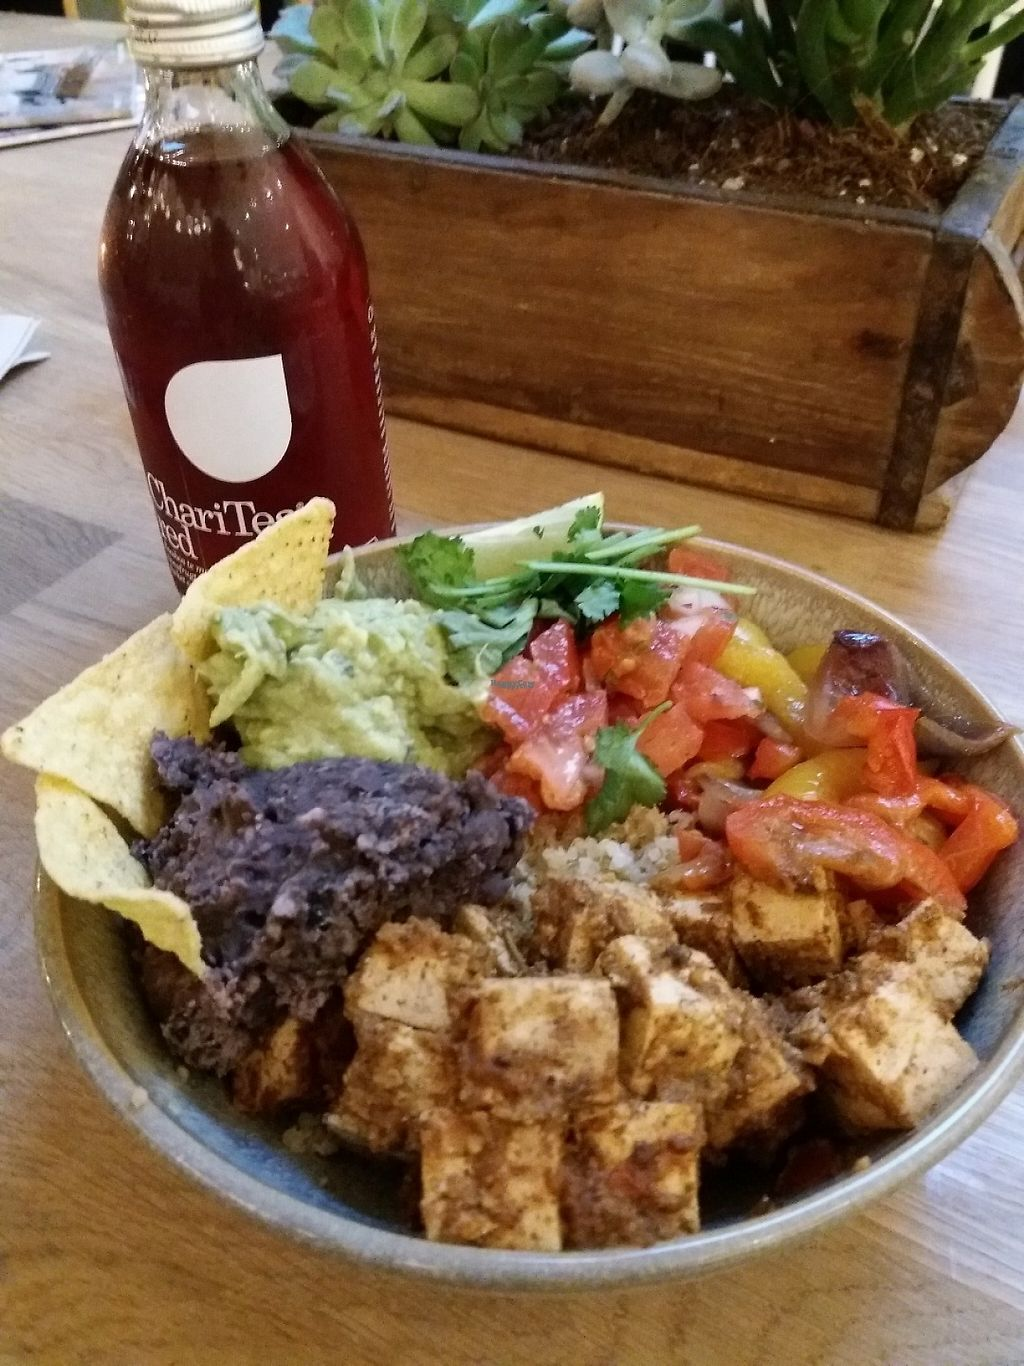 """Photo of California Kitchen  by <a href=""""/members/profile/Smoelfine"""">Smoelfine</a> <br/>Mexicali Bowl <br/> December 12, 2016  - <a href='/contact/abuse/image/83788/200190'>Report</a>"""